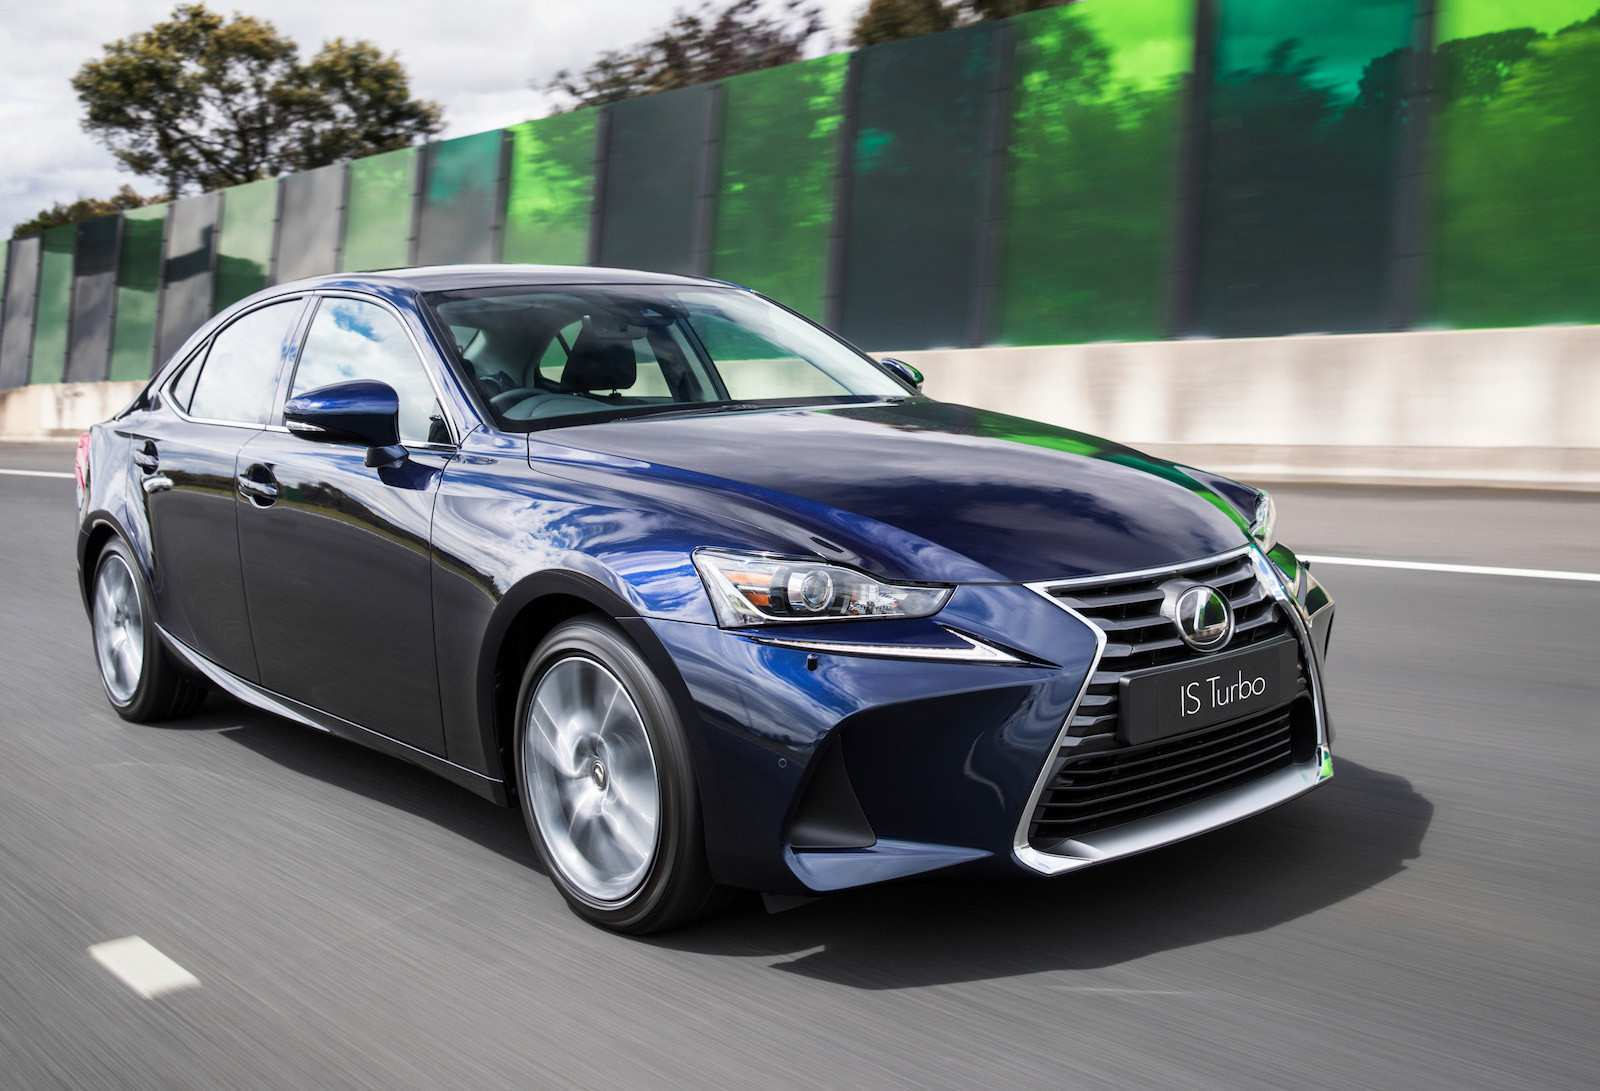 59 Gallery of Lexus Is350 Exterior 2020 New Review by Lexus Is350 Exterior 2020